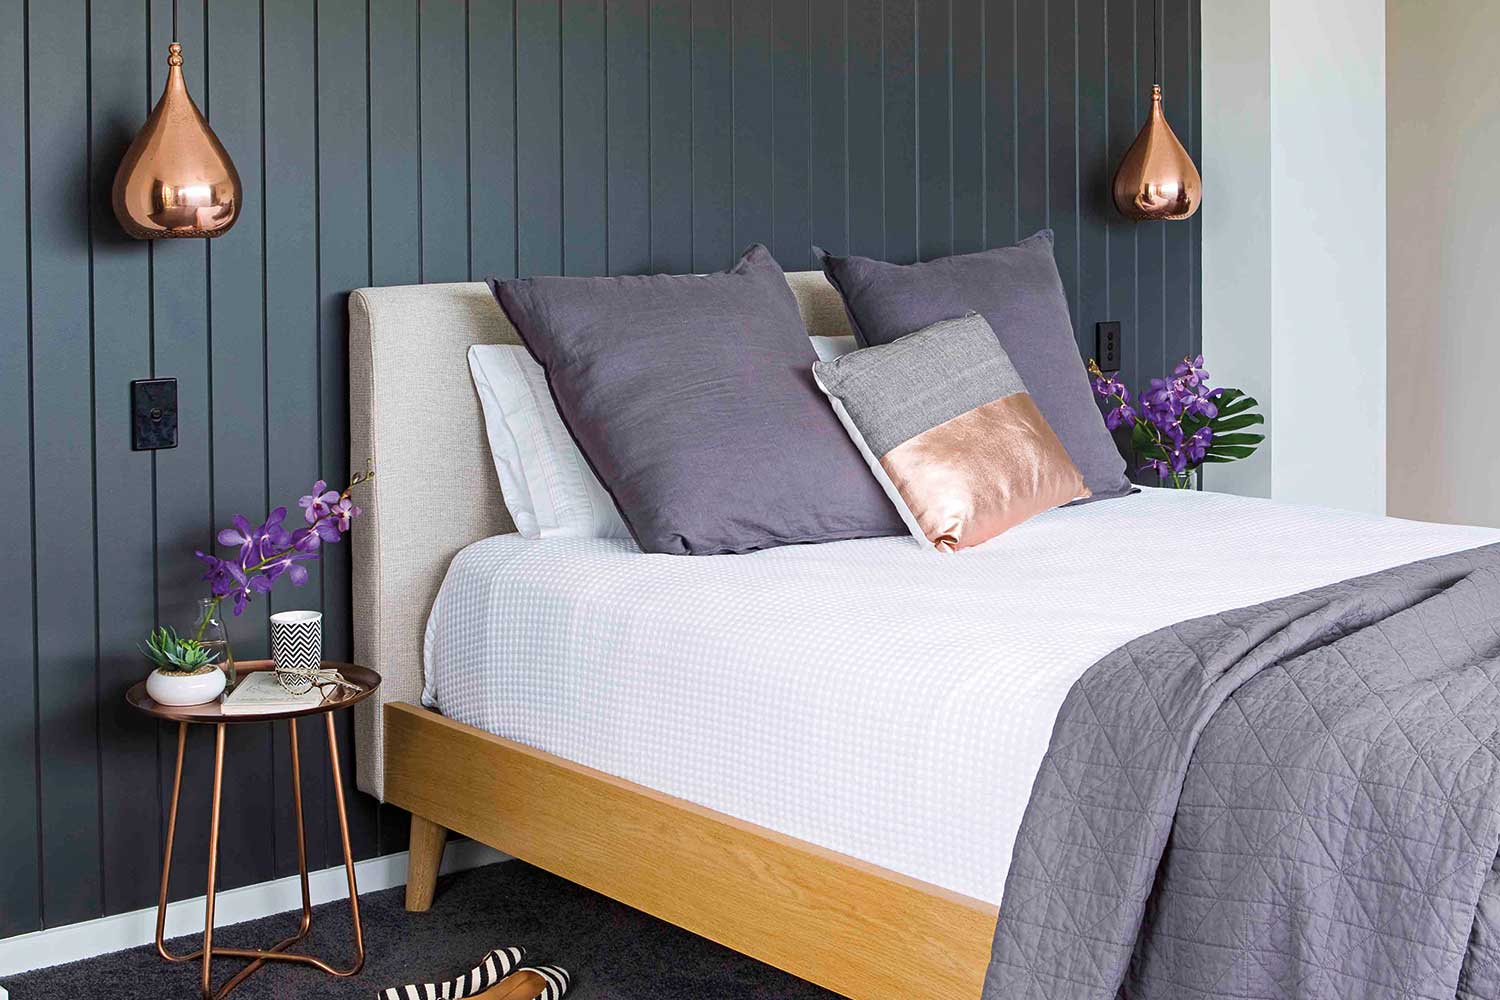 home beautiful blue tongue and groove timber wall panelling in bedroom